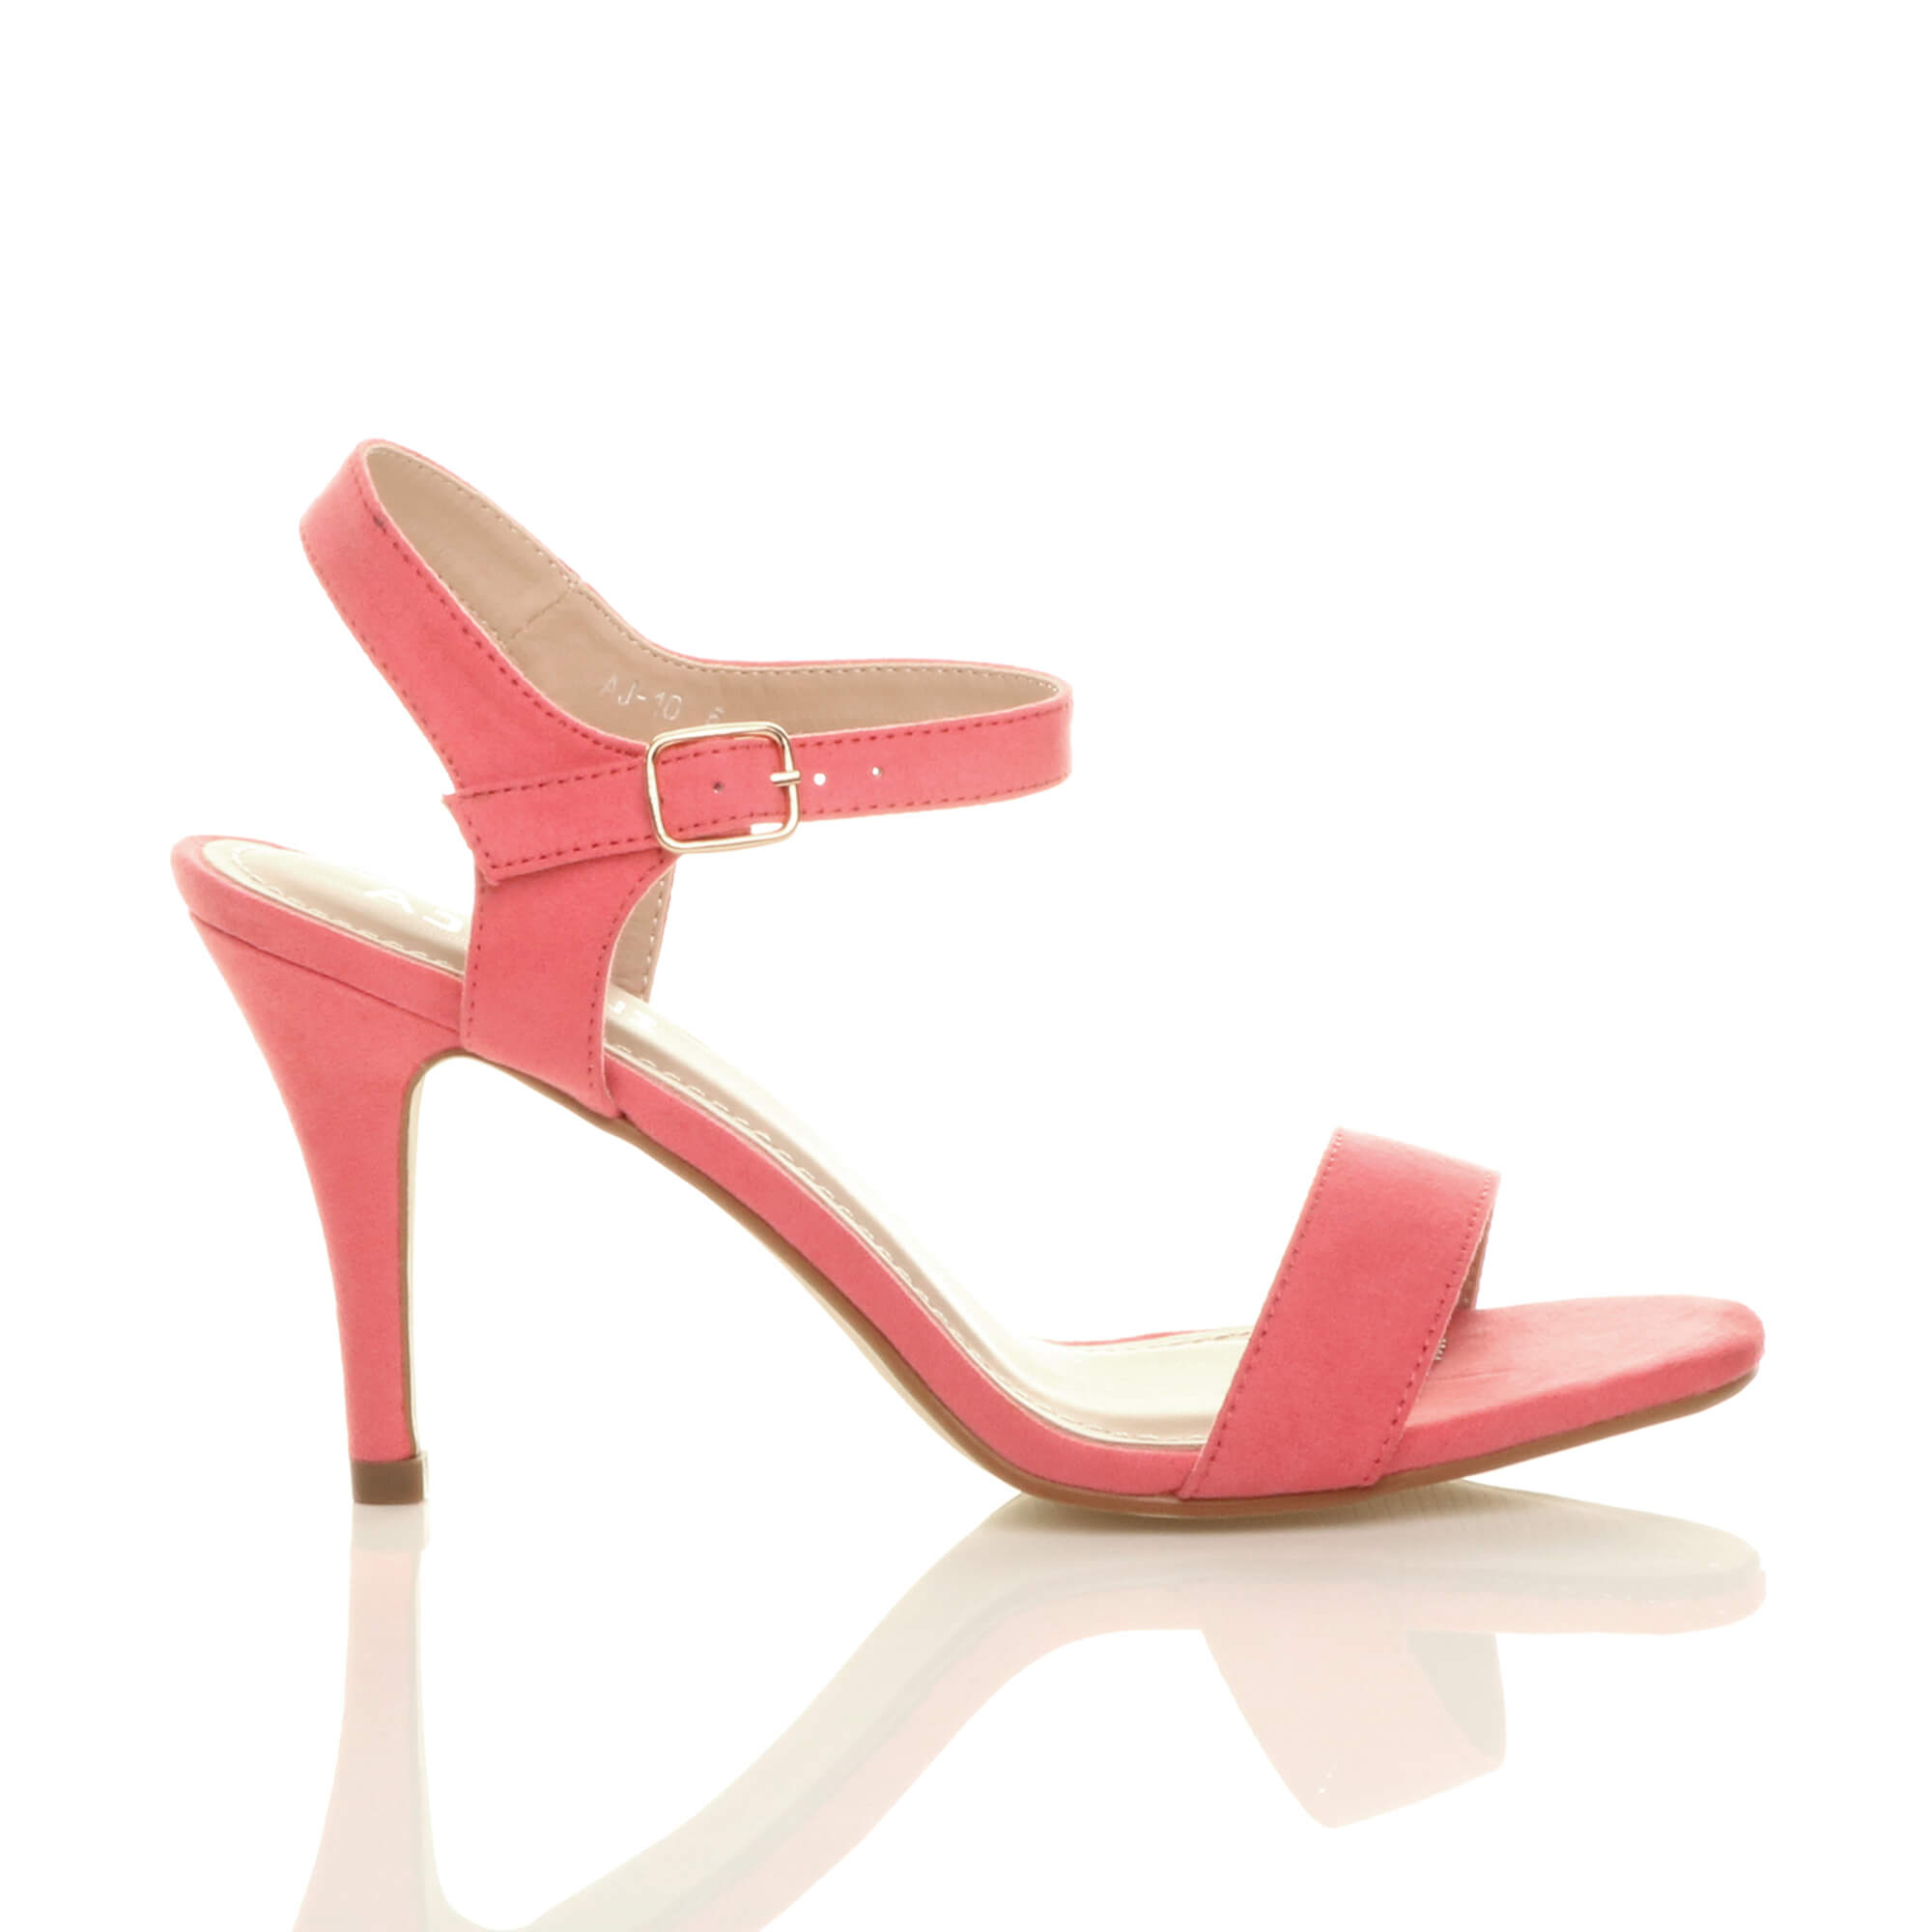 WOMENS-LADIES-HIGH-HEEL-BUCKLE-STRAPPY-BASIC-BARELY-THERE-SANDALS-SHOES-SIZE thumbnail 24